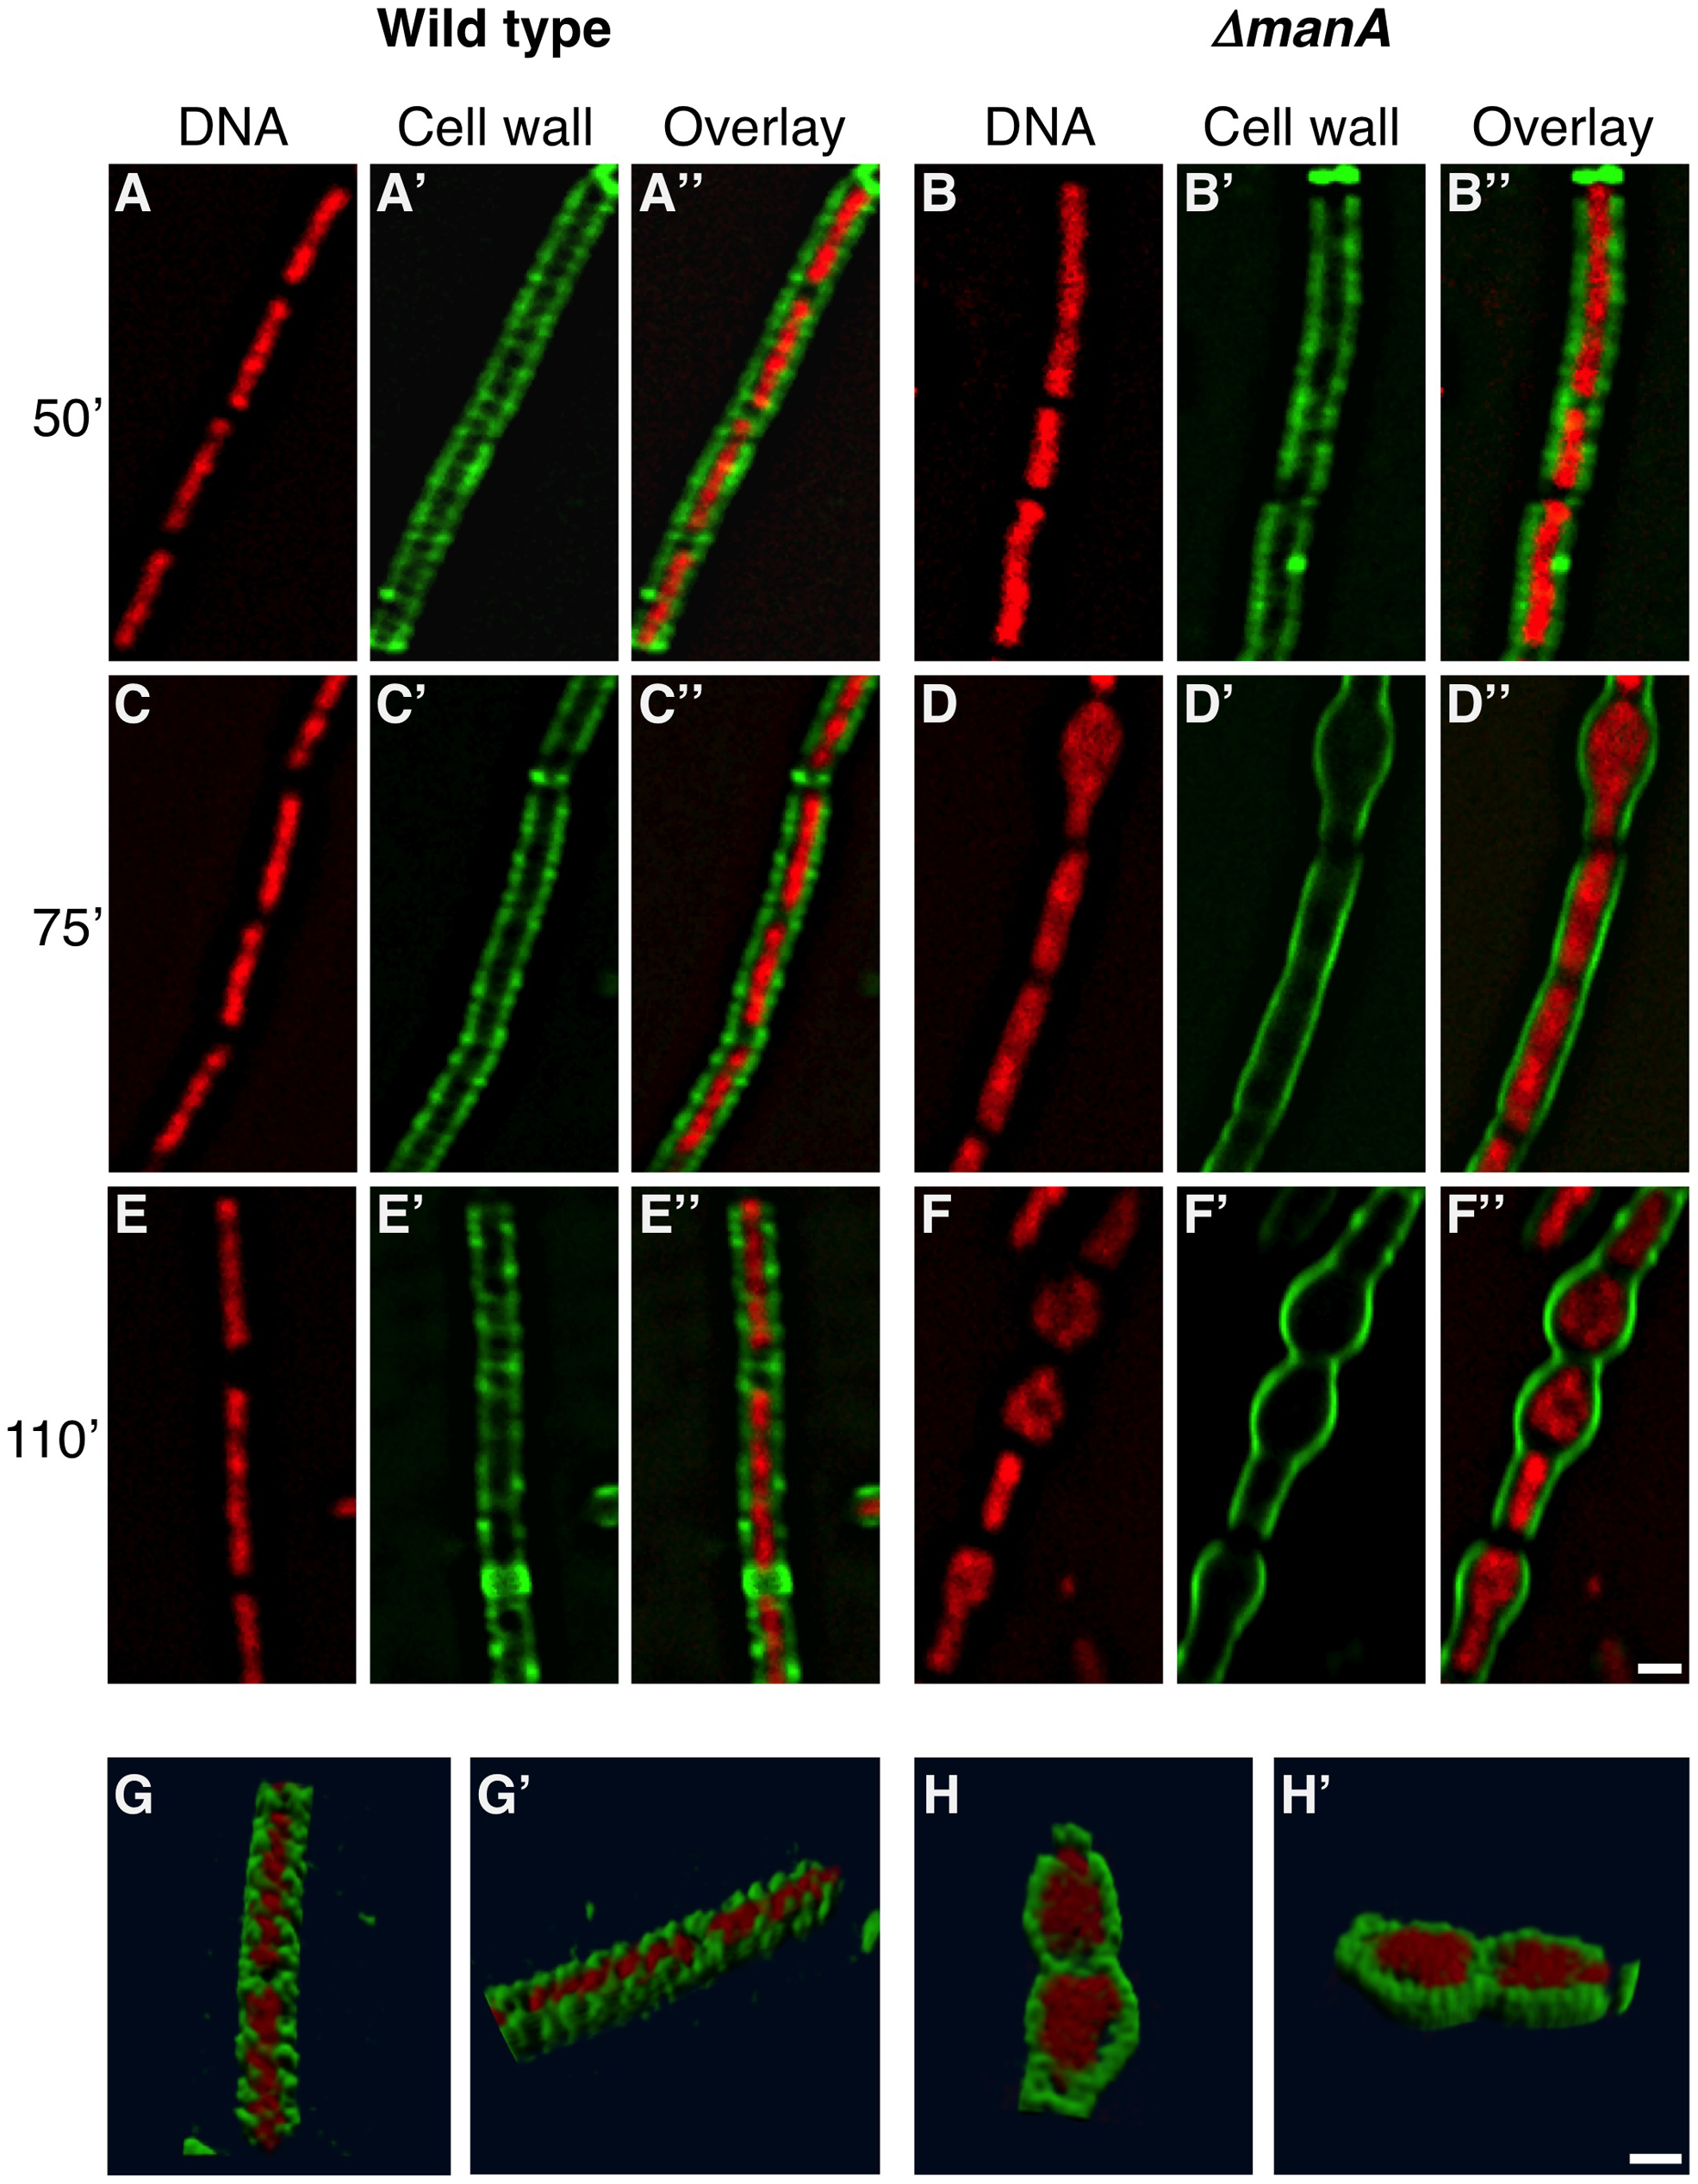 Following cell wall architecture and chromosome morphology.